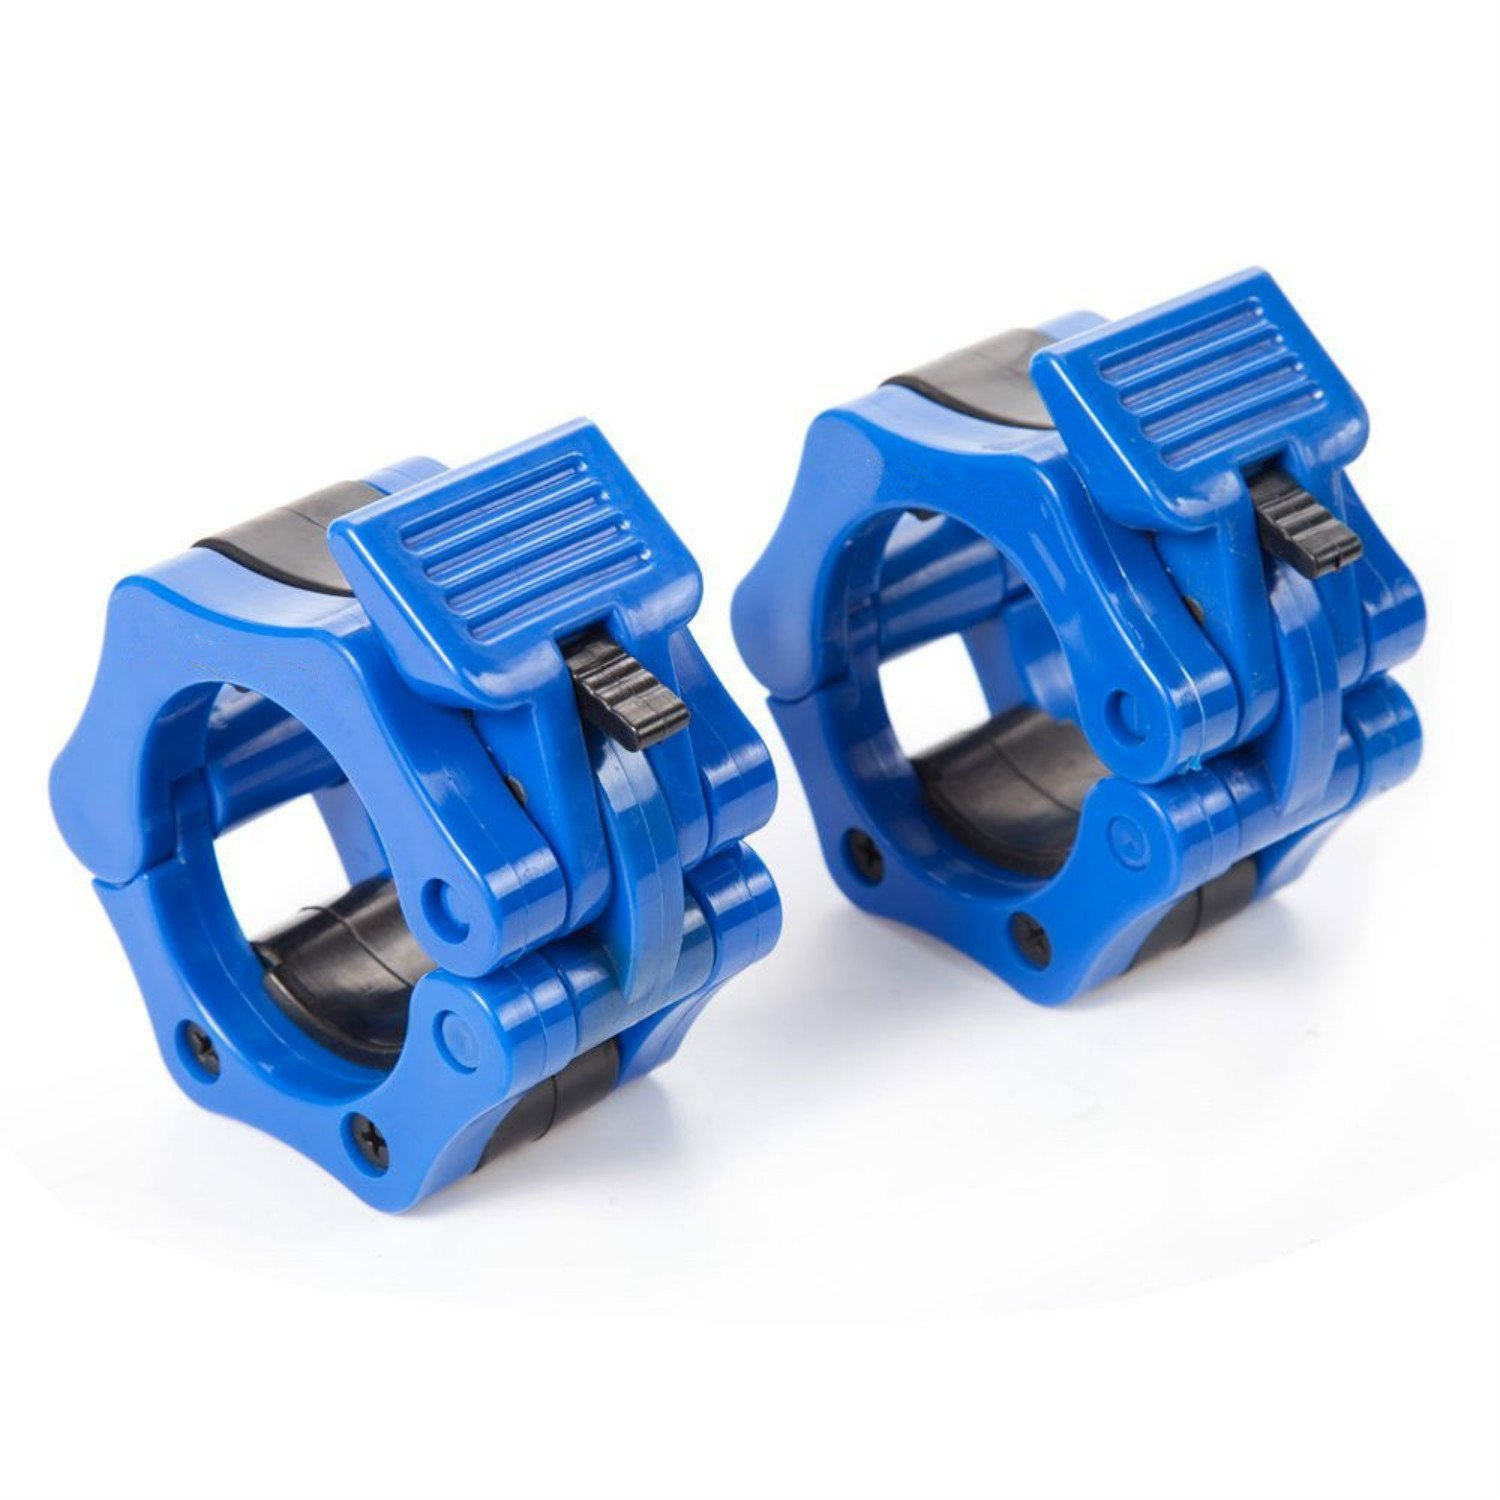 Workouty Pair of 2'' Olympic Barbell Collar Quick Release Barbell Clamp Lock Jaw for WeightLifting Crossfit Gym Exercise (Blue)